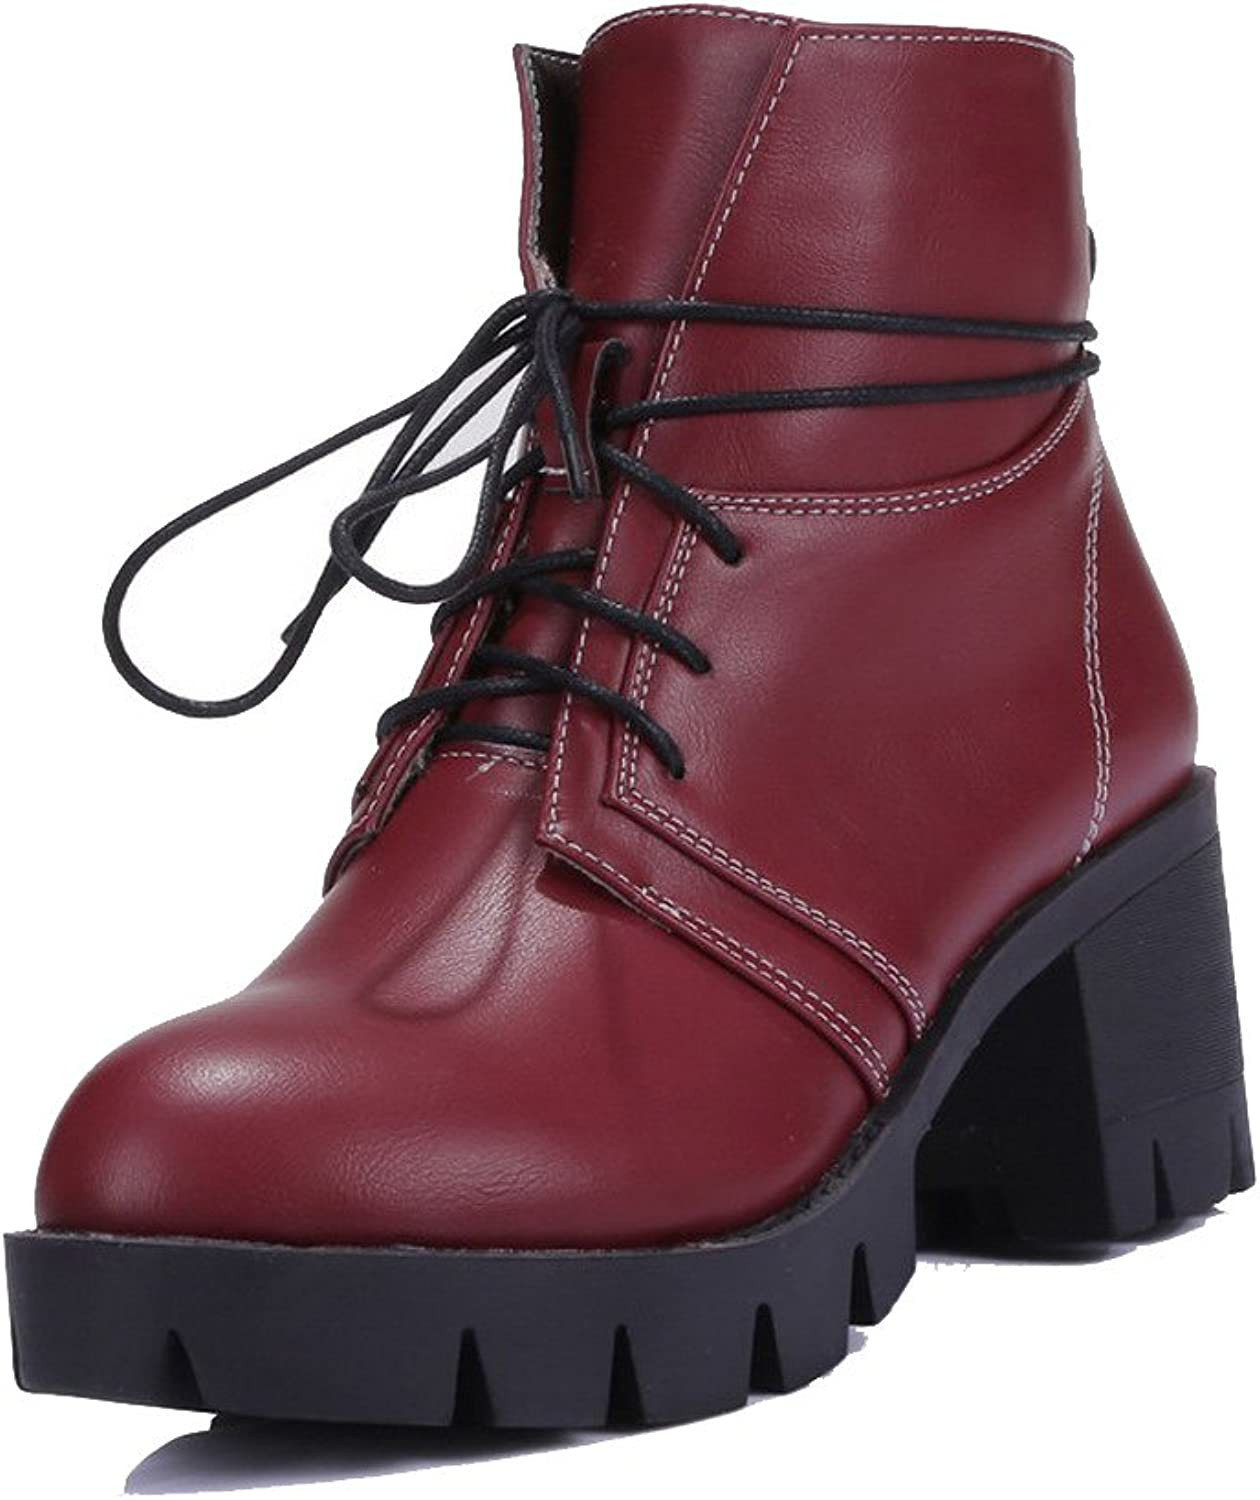 AmoonyFashion Women's Lace-up Kitten-Heels PU Solid Low top Boots